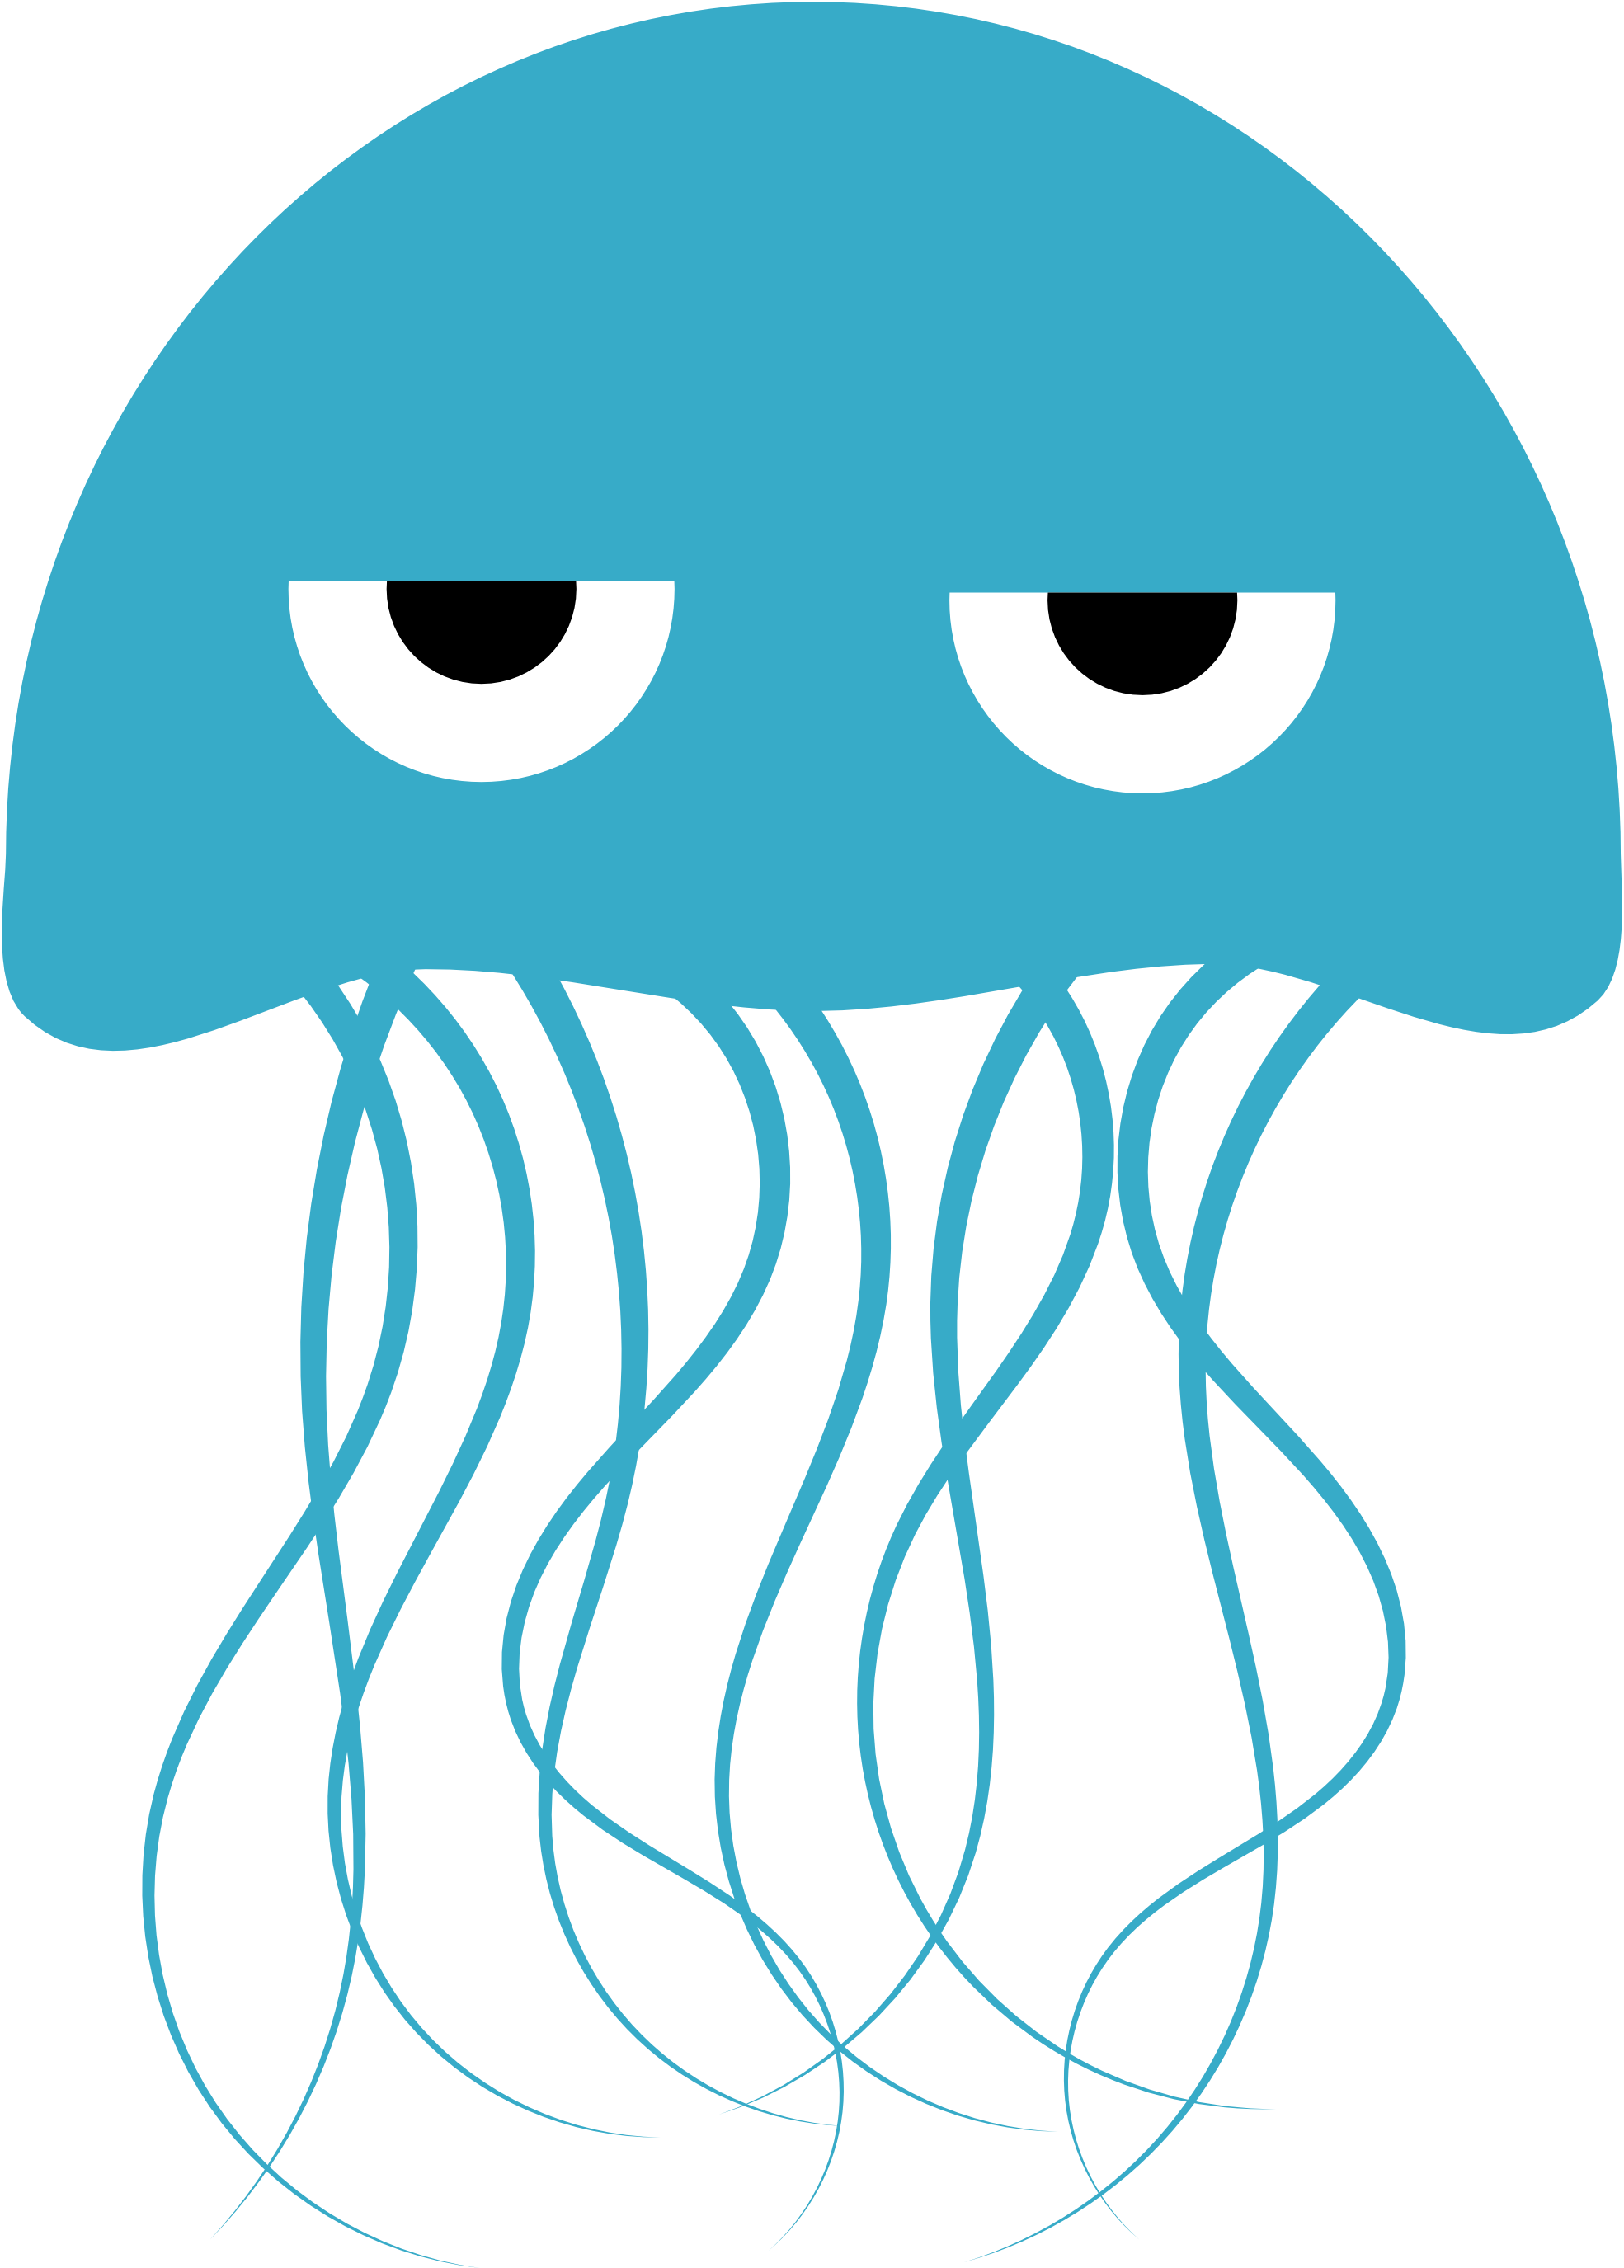 Jellyfish clipart png transparent background.